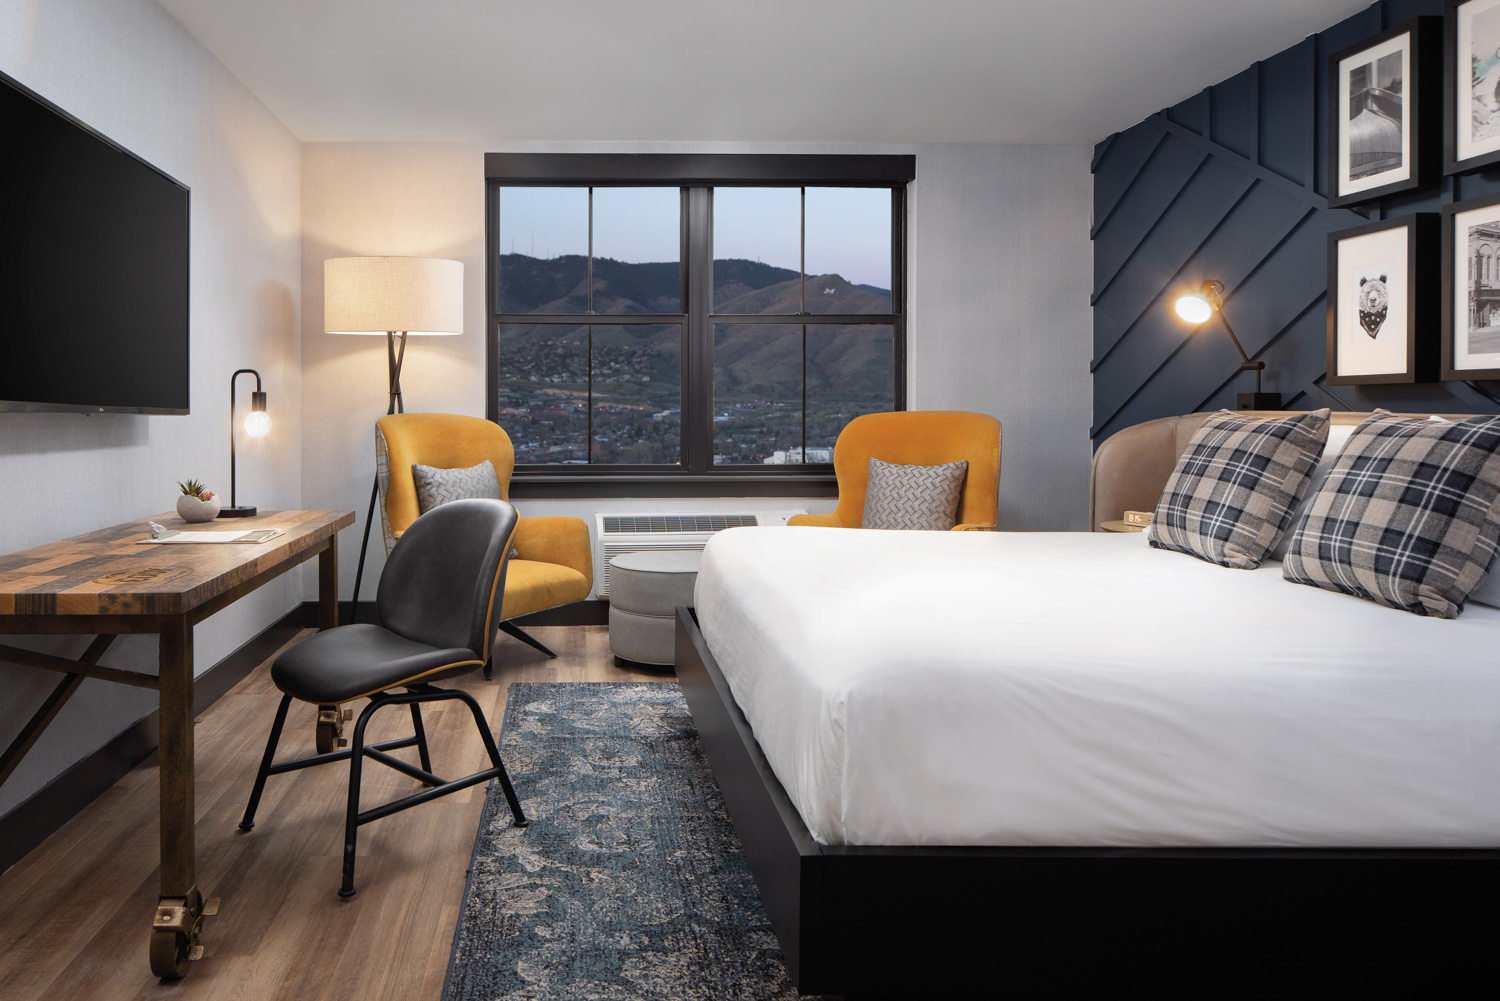 The Hotel Breathing Fresh Life Into Colorado's Mining History {The Hotel Breathing Fresh Life Into Colorado's Mining History} – English